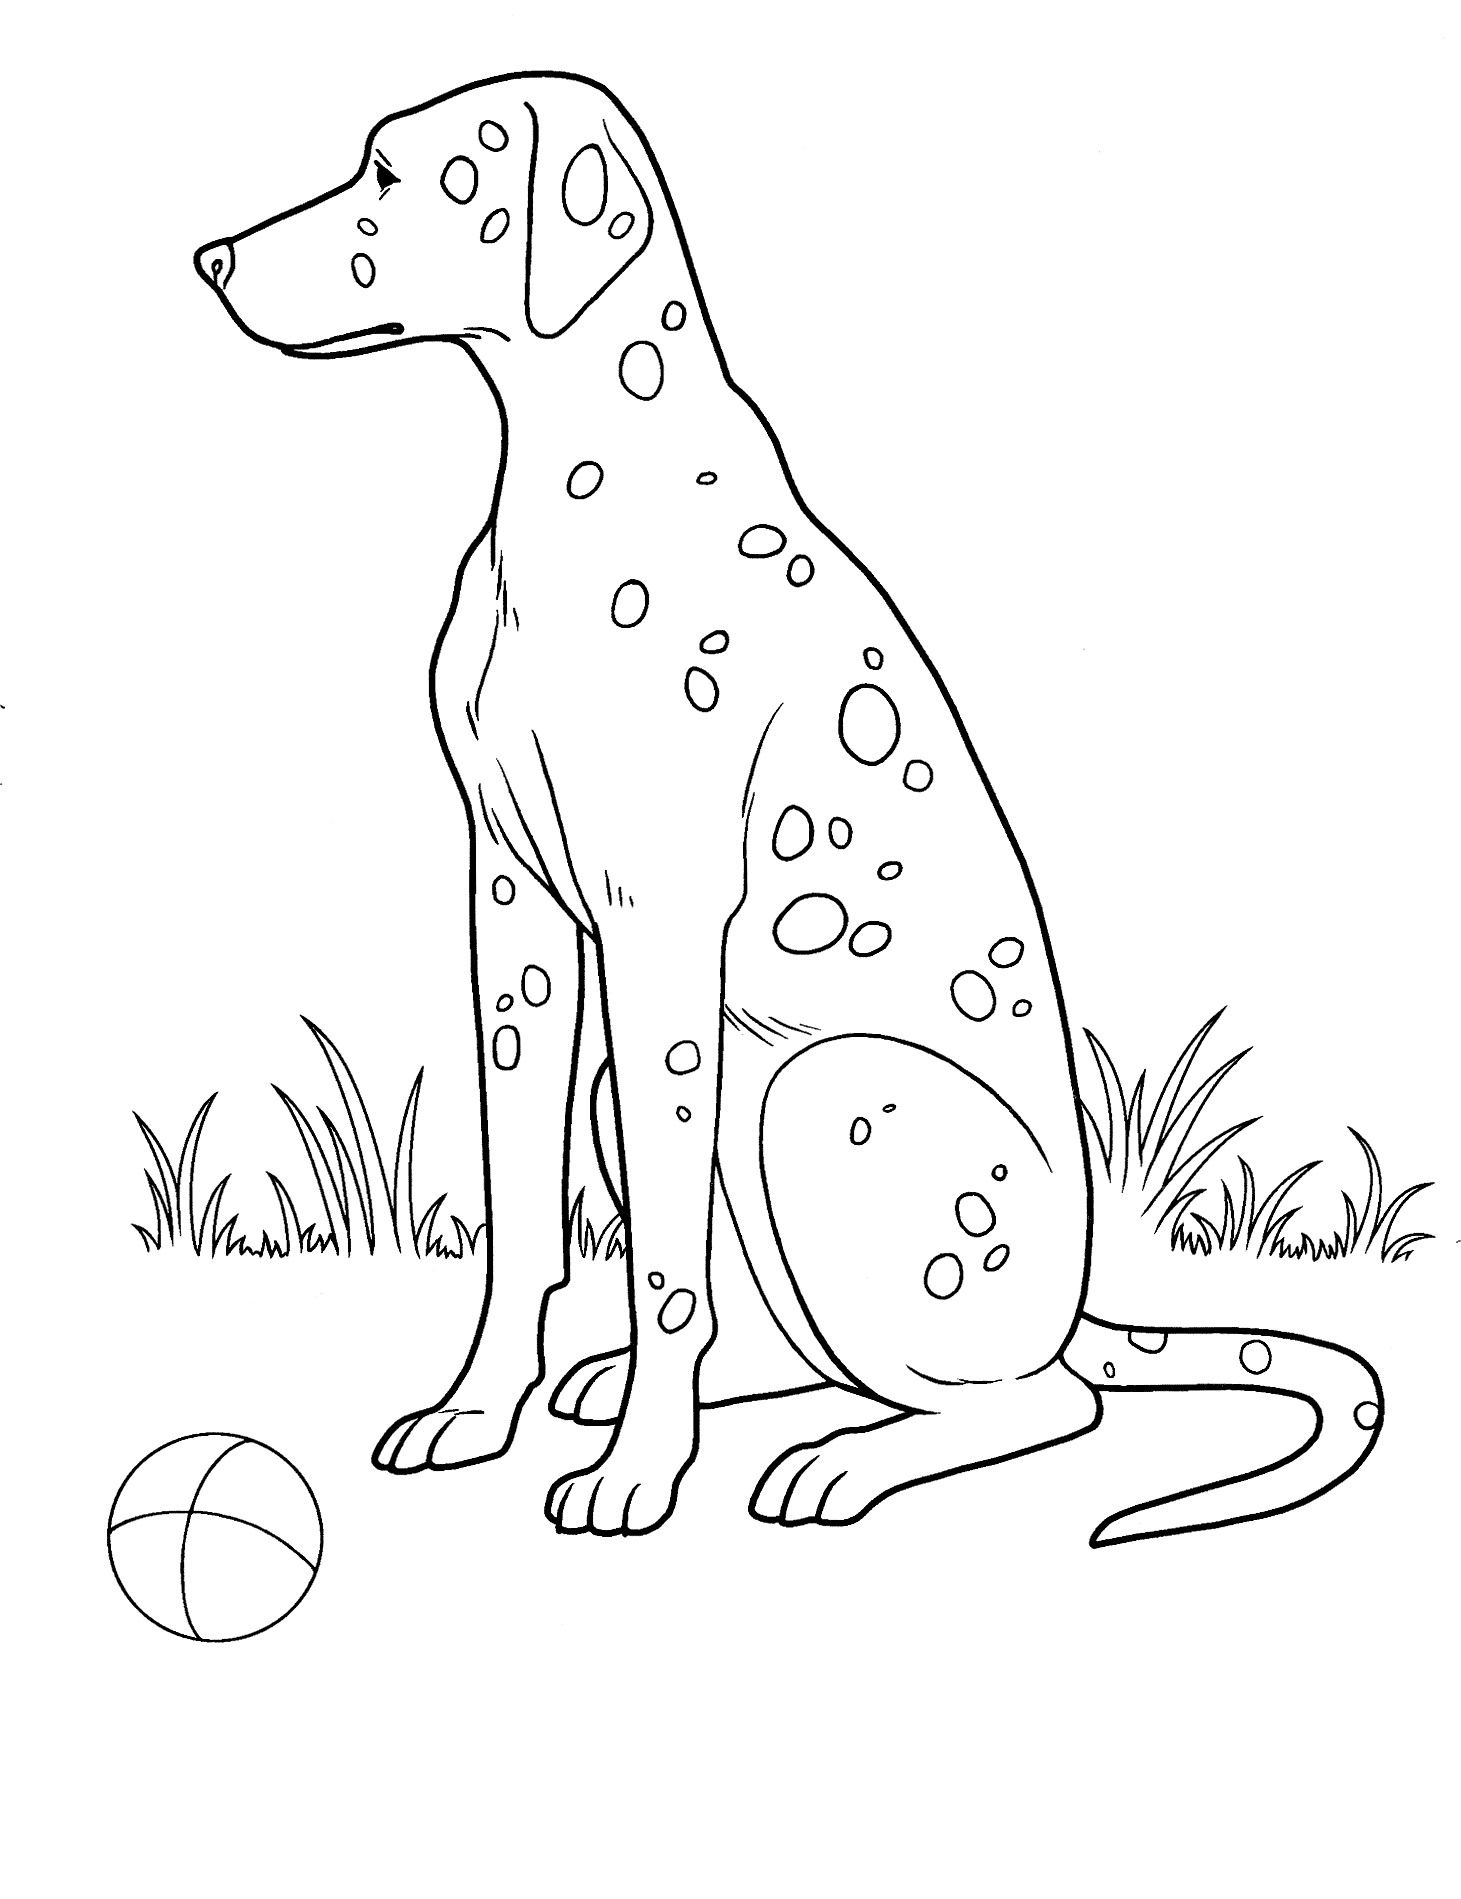 Dog Coloring Pages 27 Teenagers Coloring Pages Coloring Pages